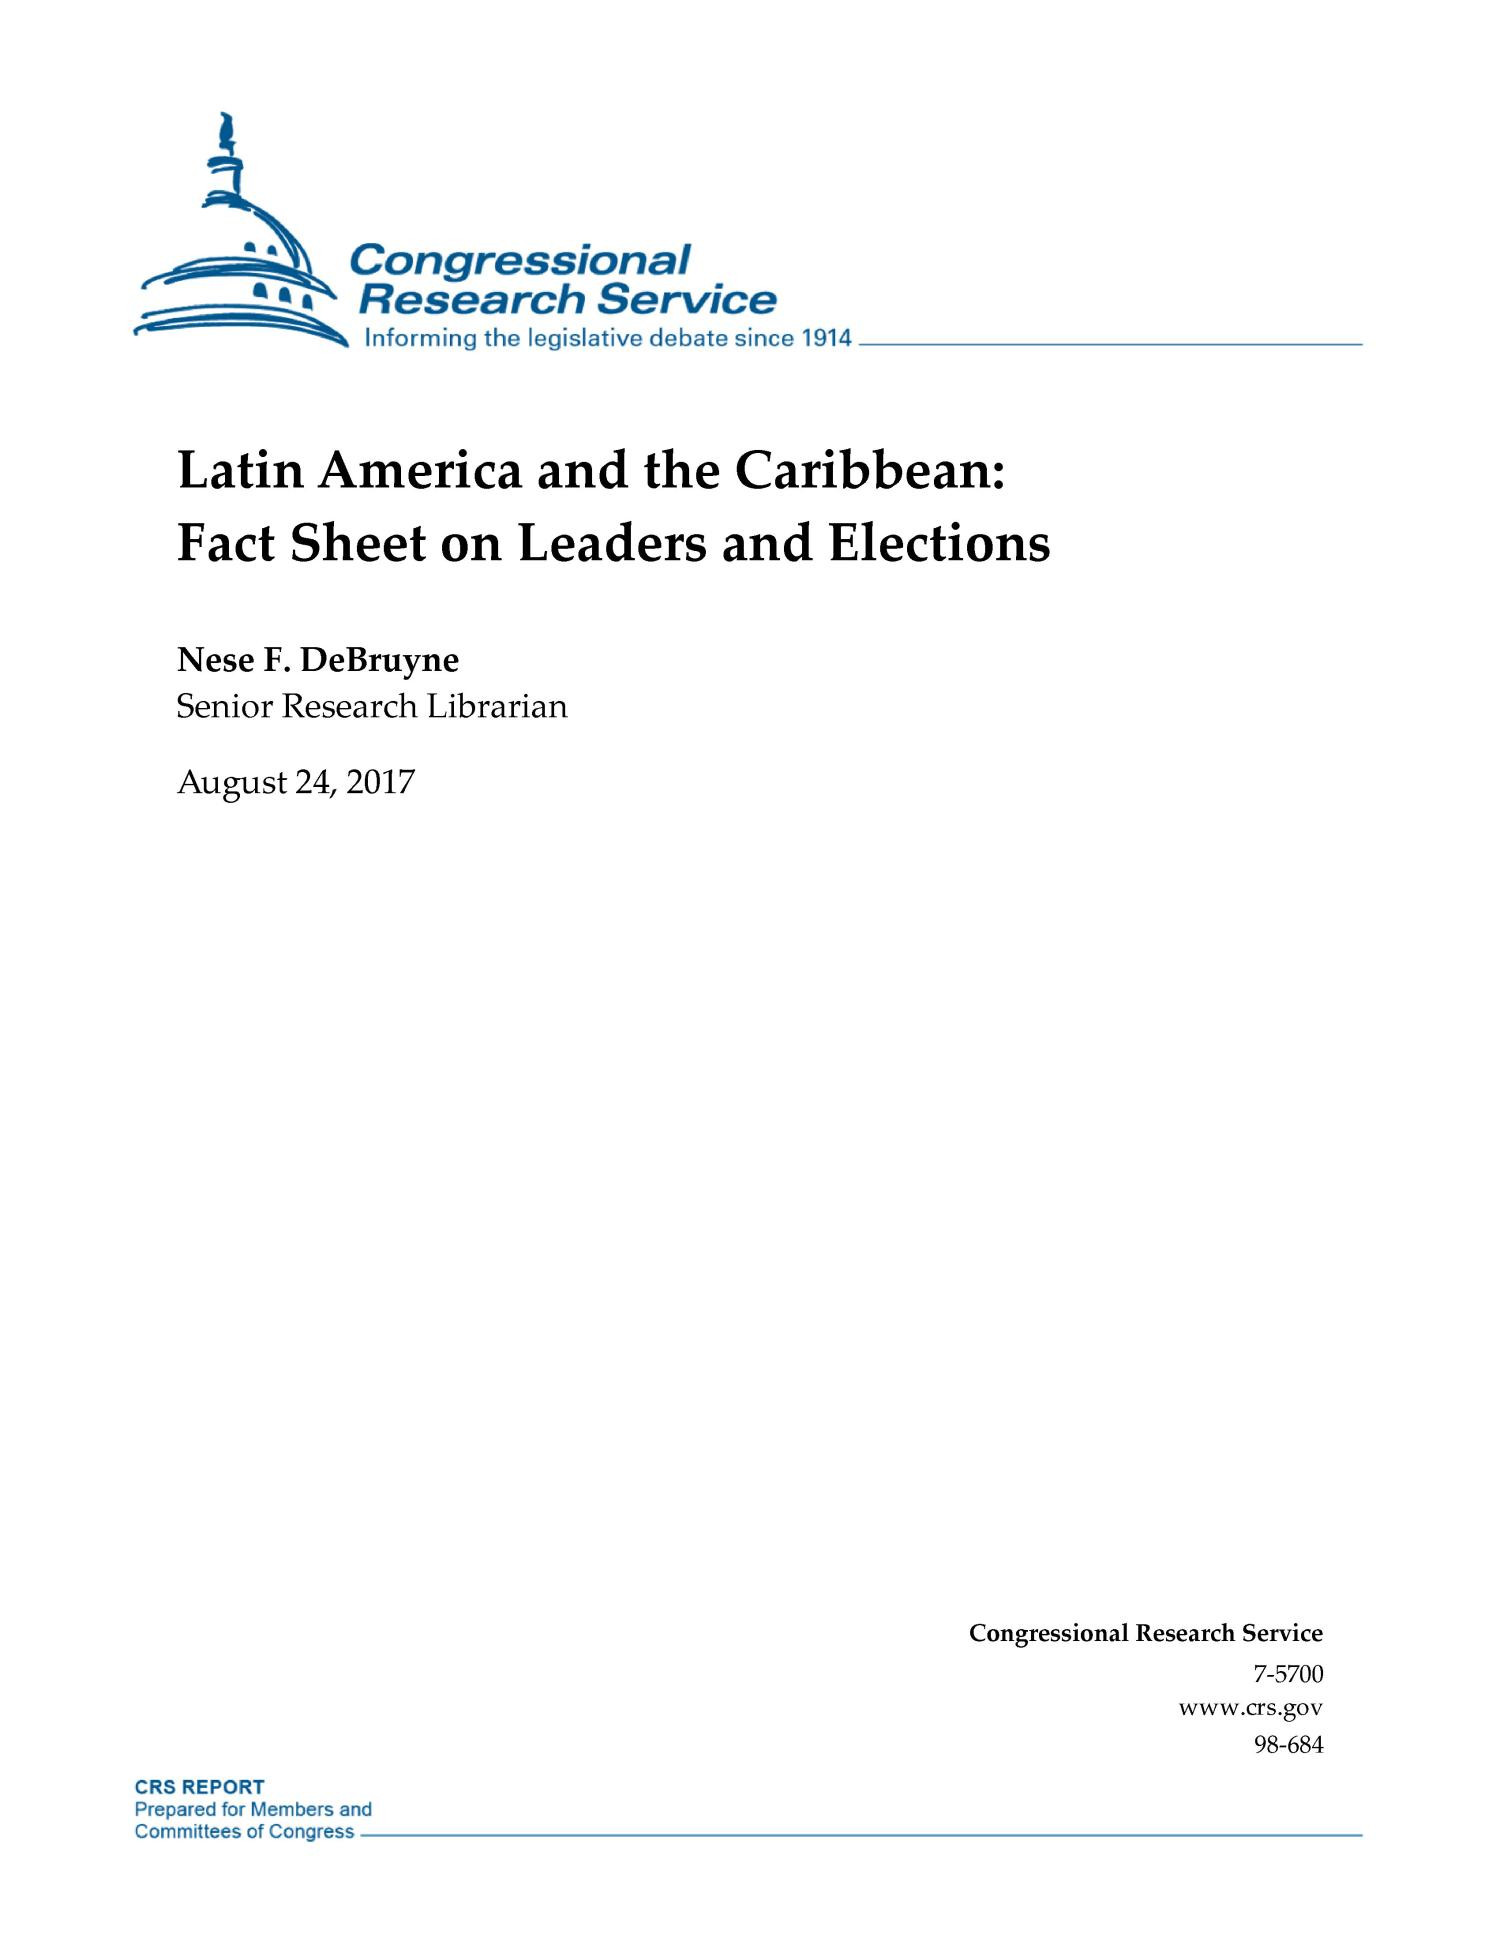 Latin America and the Caribbean: Fact Sheet on Leaders and Elections                                                                                                      [Sequence #]: 1 of 4